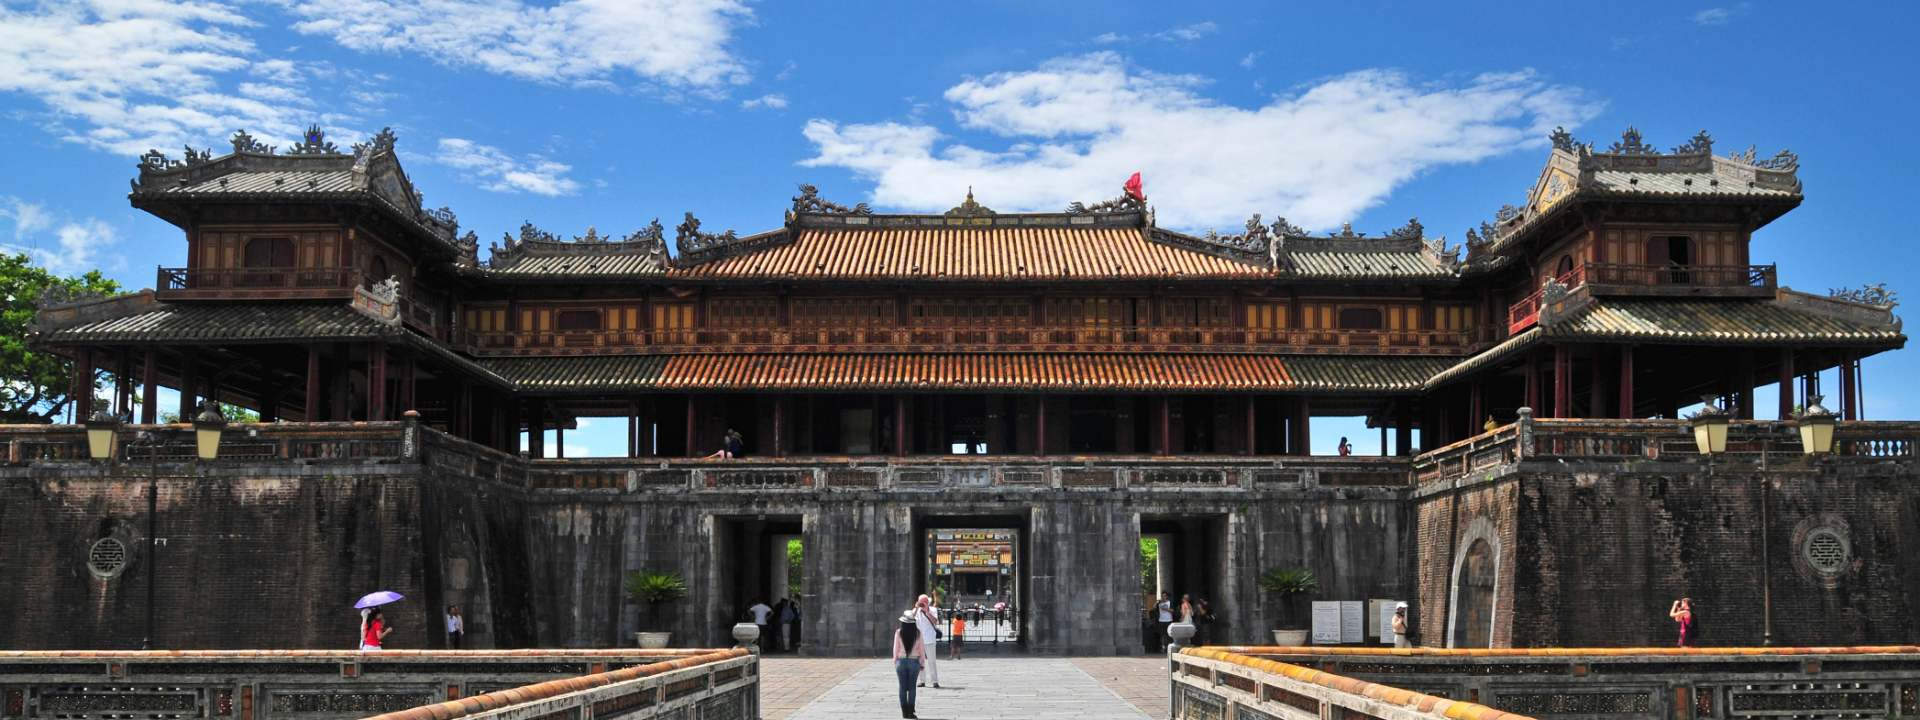 Emperors With An Insightful Tour Of Hue & Hoi An 5 Days